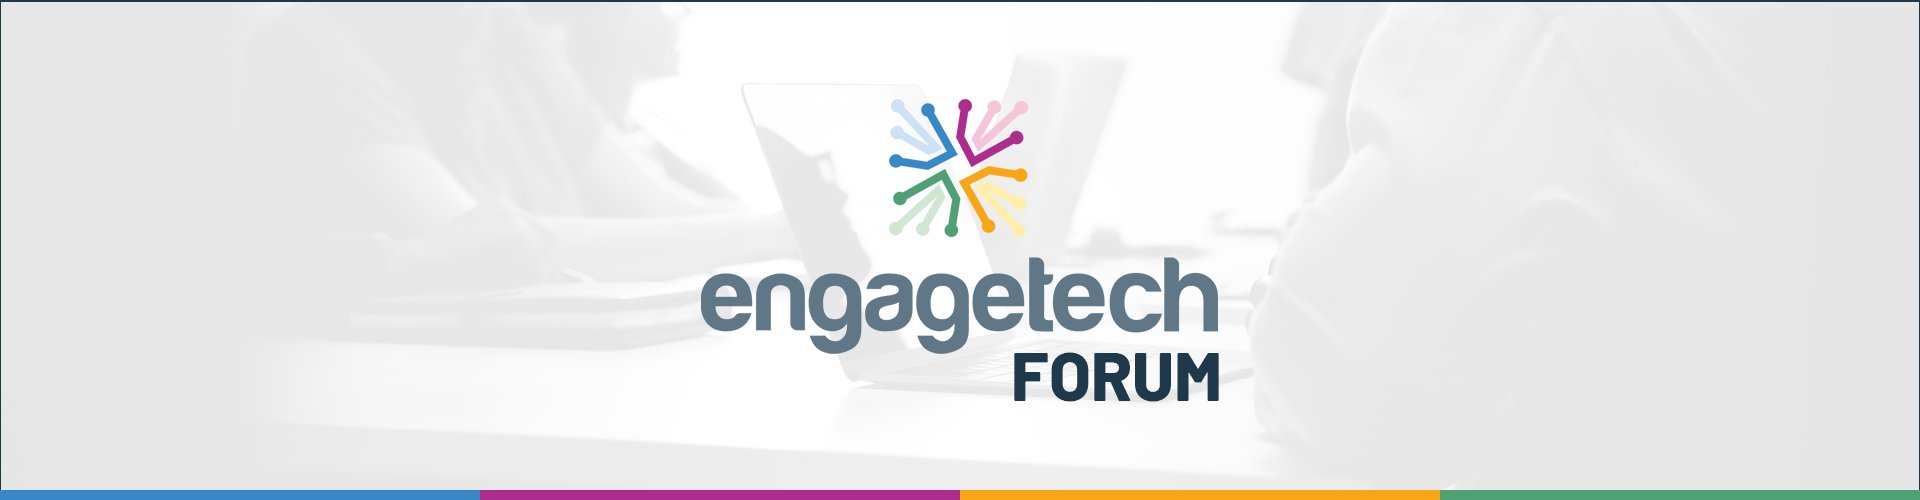 engagetech-forum